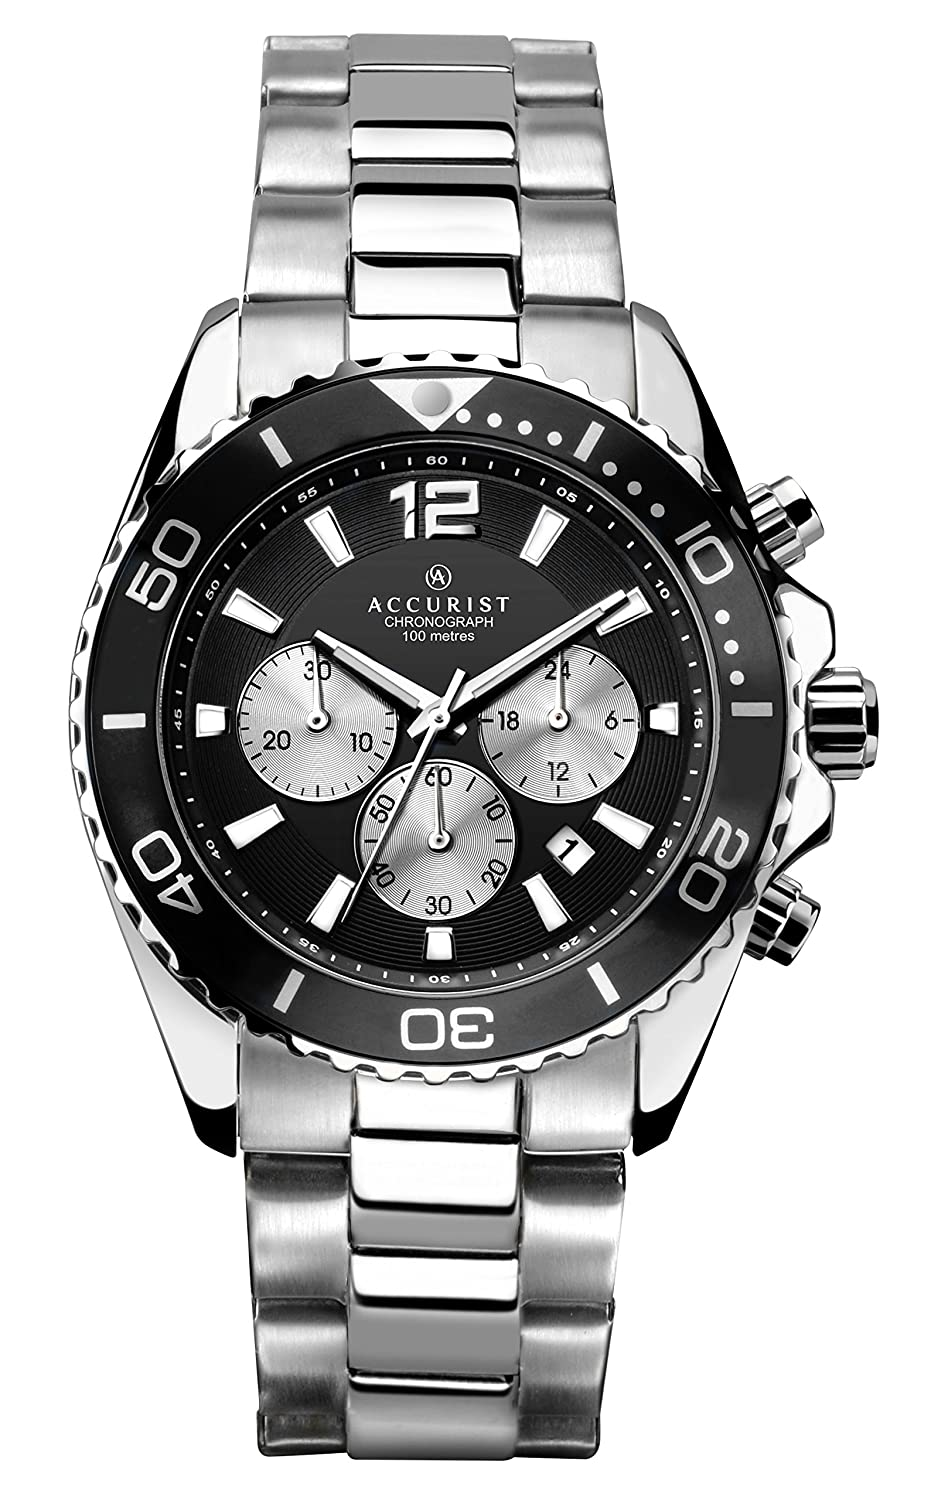 8d9288025 Accurist Men's Quartz Watch with Black Dial Chronograph Display and Silver  Stainless Steel Bracelet 7117: Amazon.co.uk: Watches